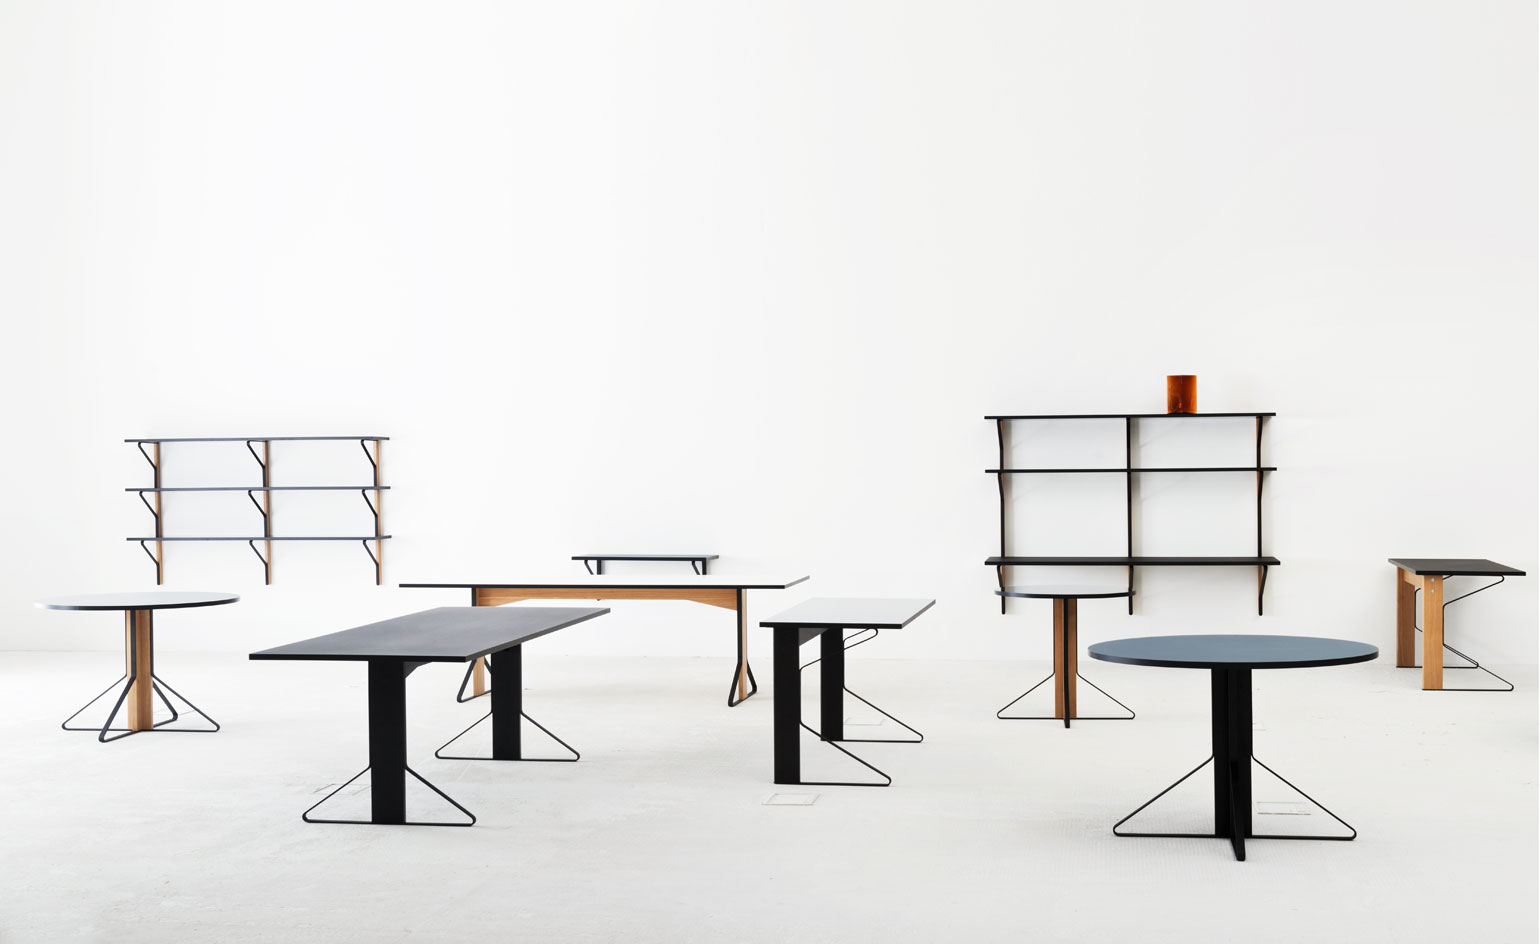 Kaari Collection by Ronan and Erwan Bouroullec for Artek